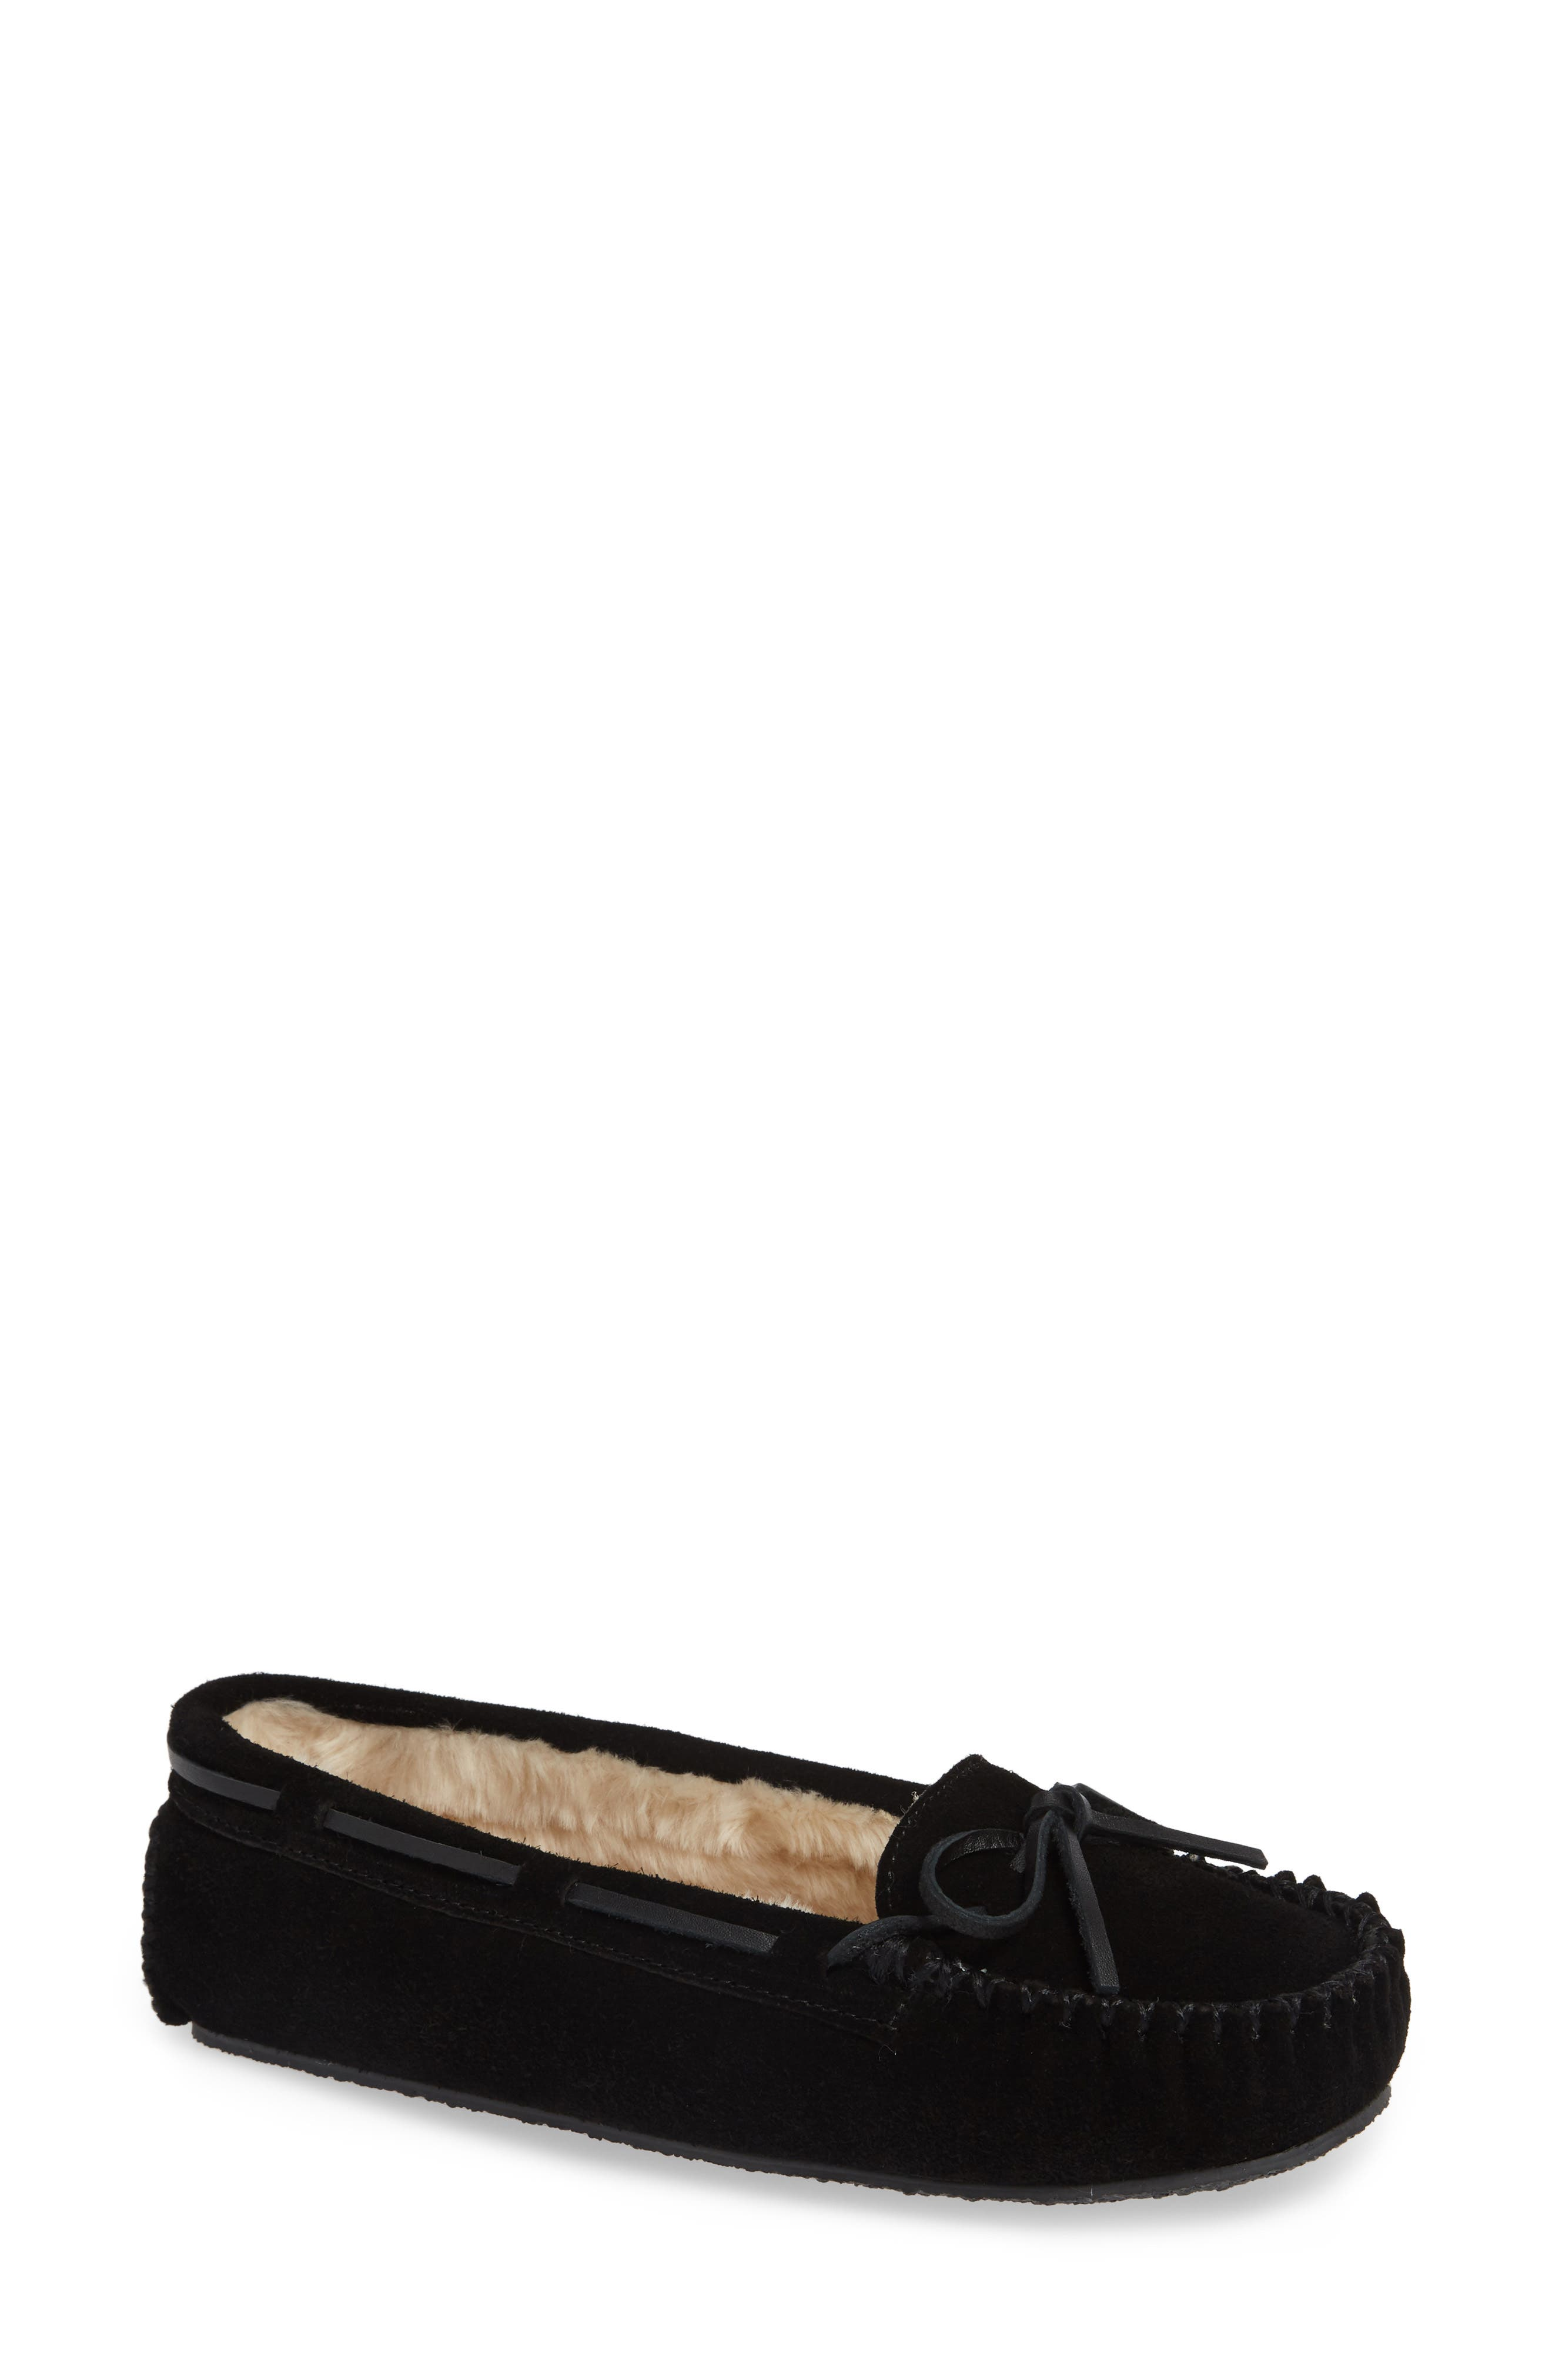 MINNETONKA, 'Cally' Slipper, Main thumbnail 1, color, BLACK SUEDE